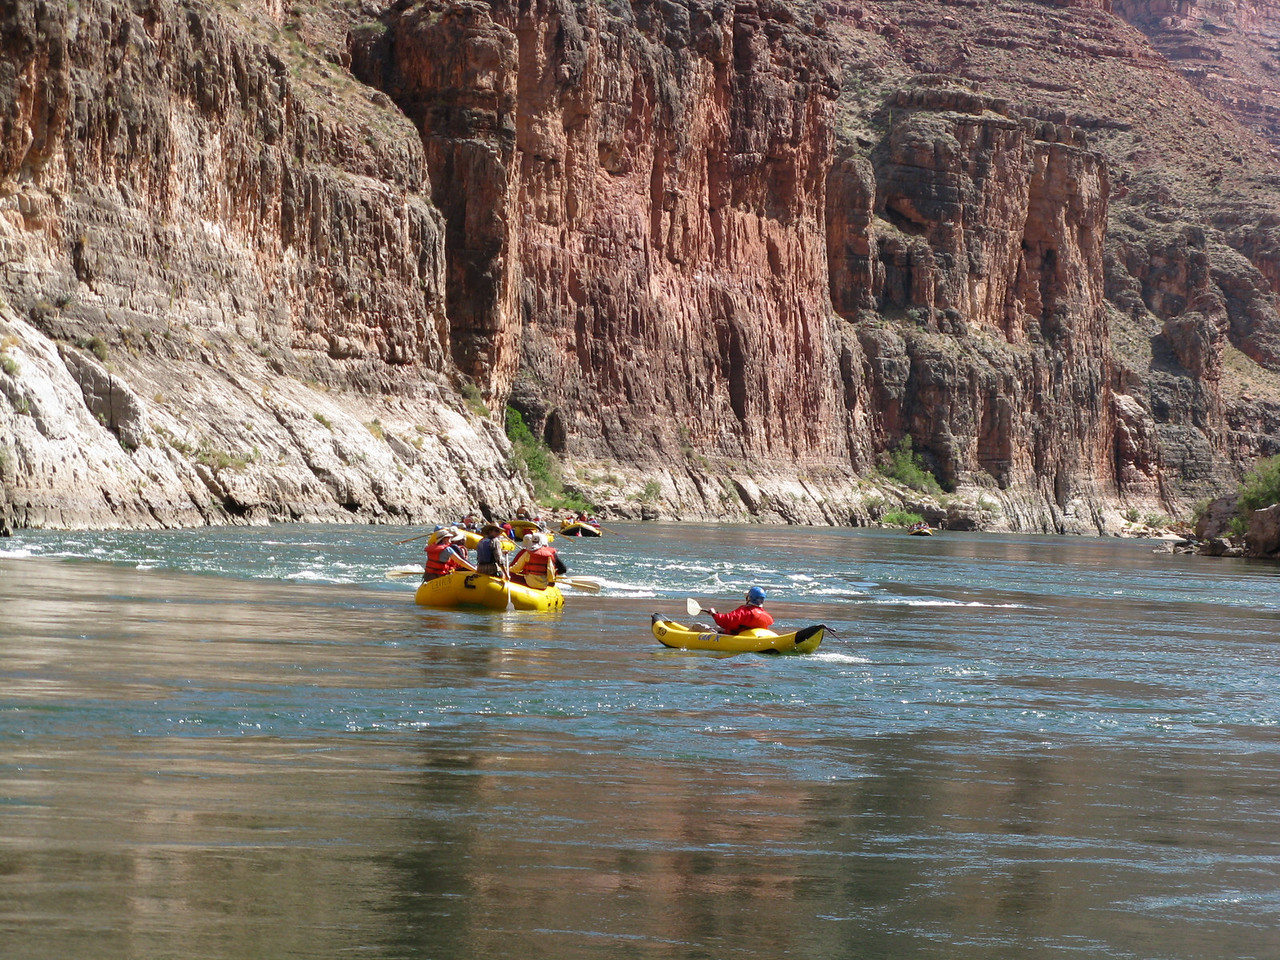 Another view as they float through the rapid.